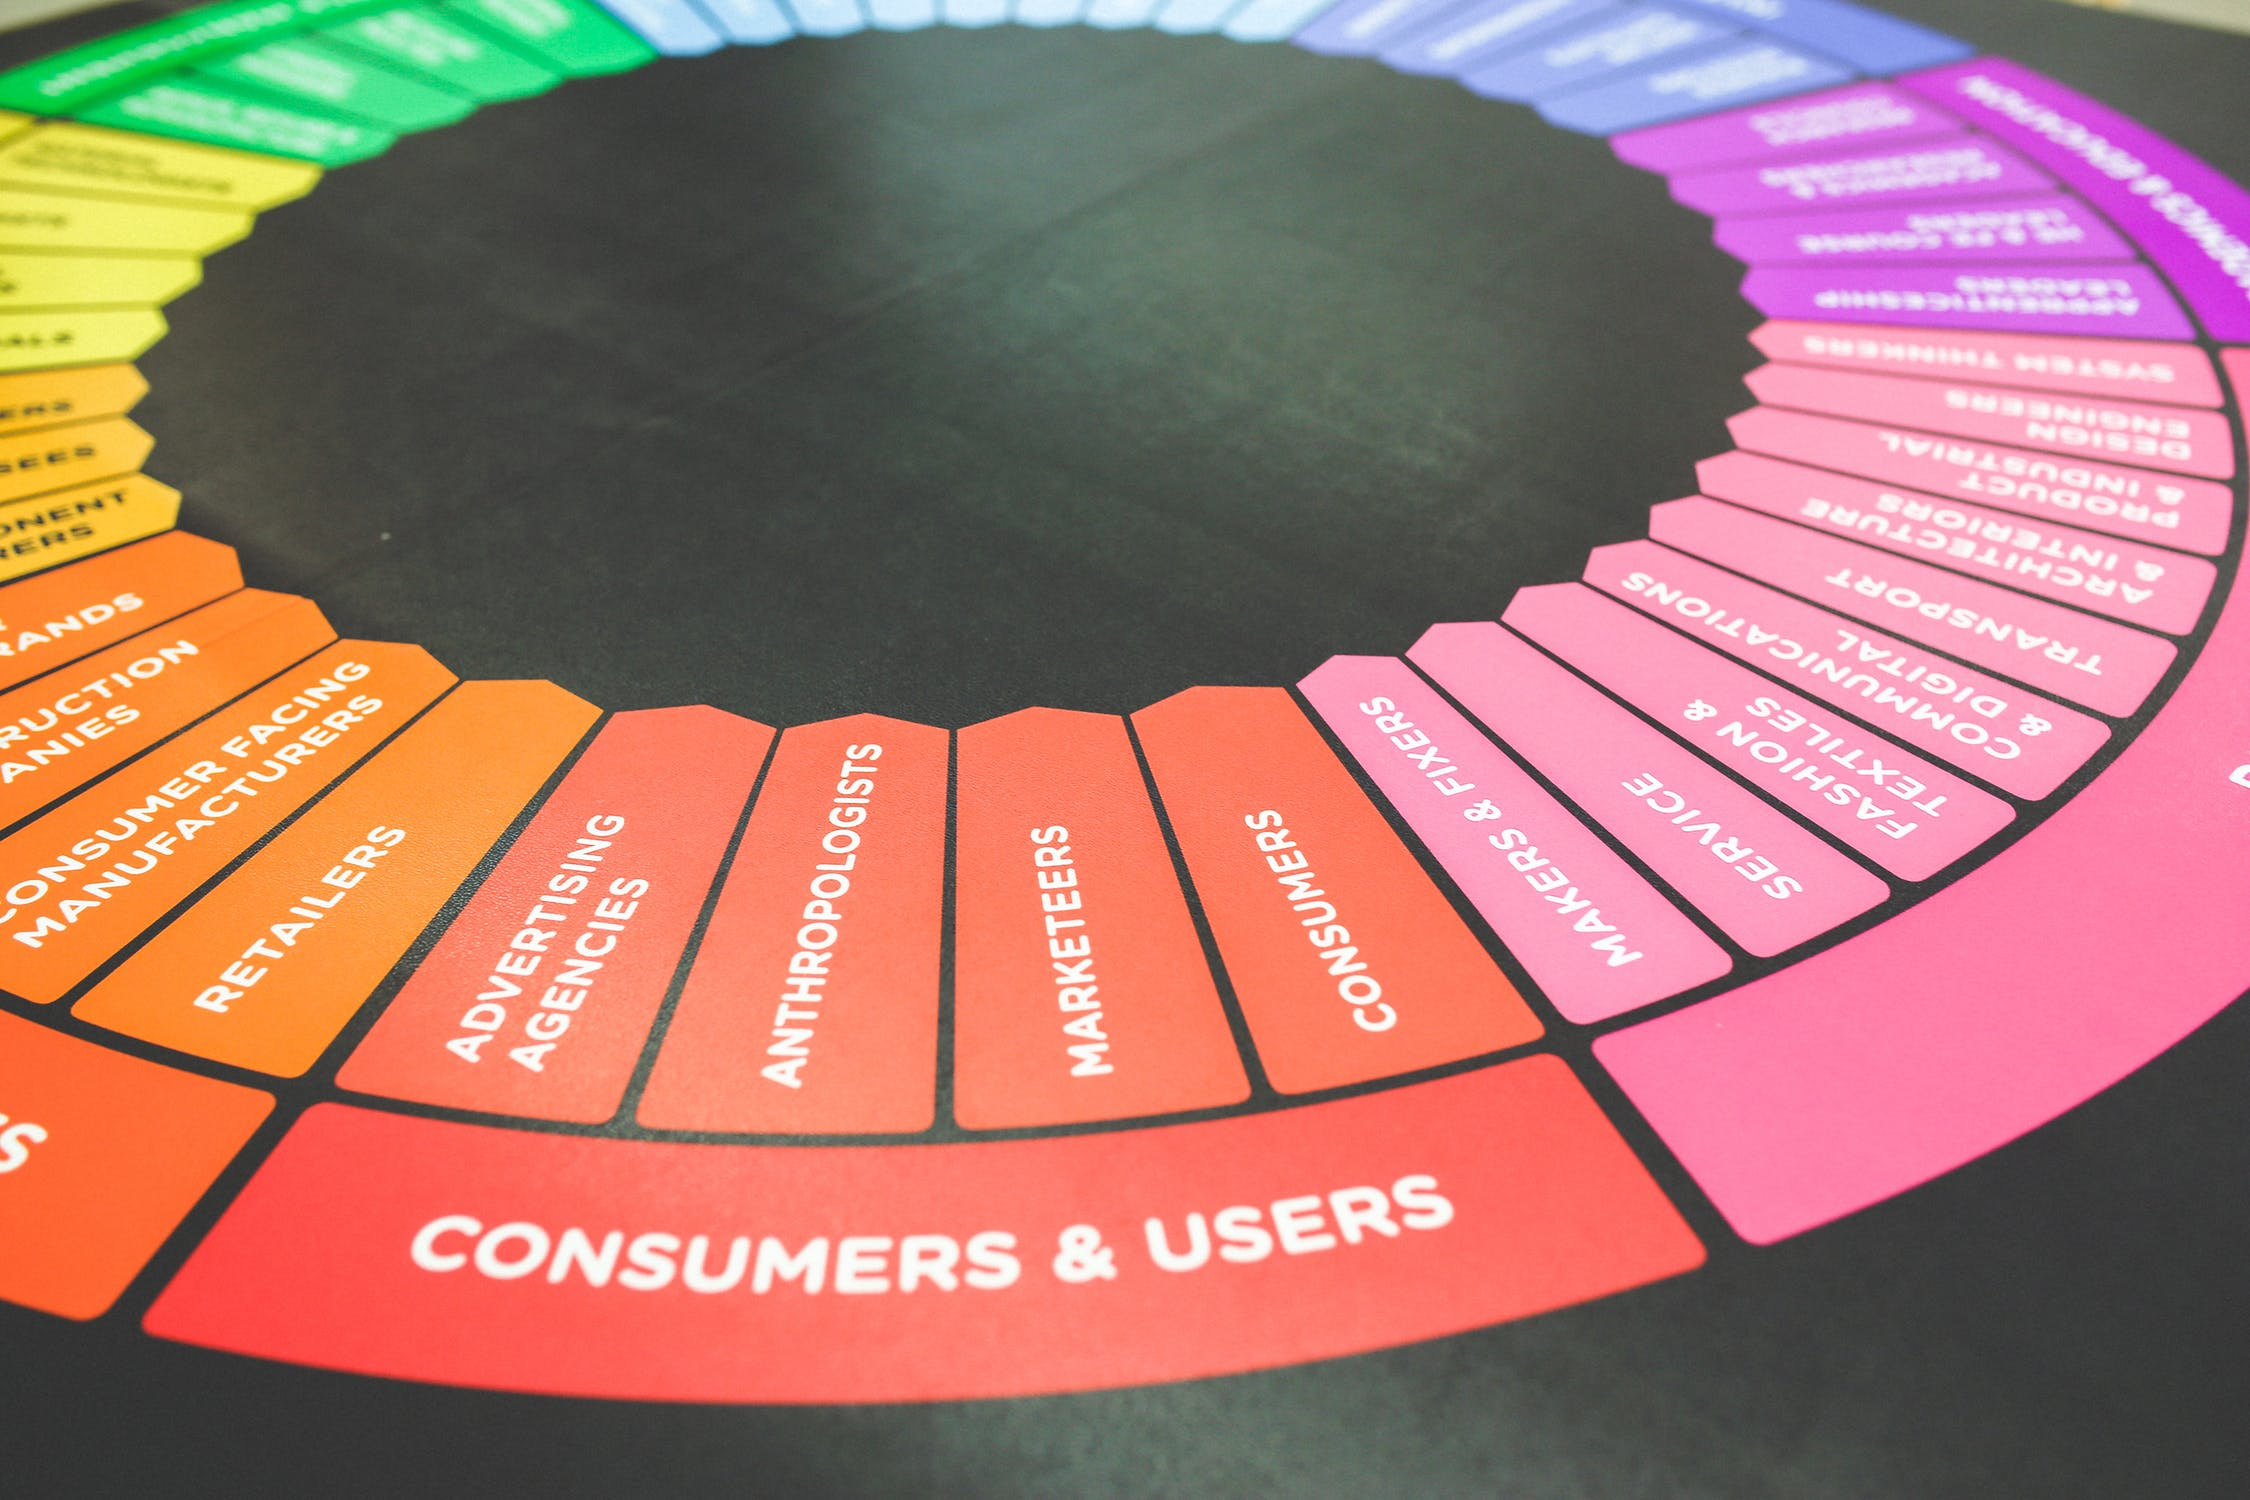 marketing-color-colors-wheel.jpg